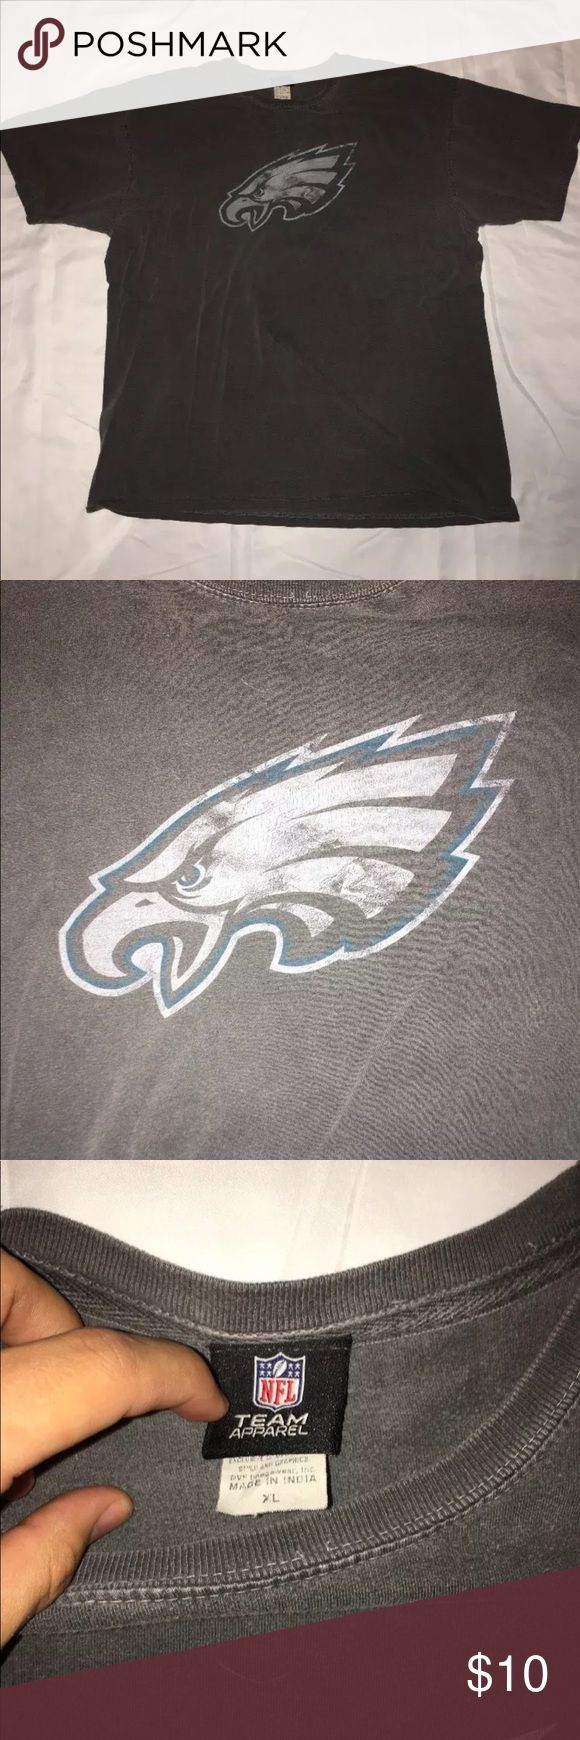 nfl shop eagles over dye t-shirt eagles over dye t-shirt  size XL super clean  follow on the gram @pa_soleking.610  i am always buying shoes please message me or dm me on the gram  all buyers who do not pay for their item will be blocked from my page   please make sure to look at all pictures before purchasing   if you want to offer make sure you can pay that offer or don't bother offering at all   payment is due within 3 days or unpaid case will be automatically opened NFL team Shirts Tees…